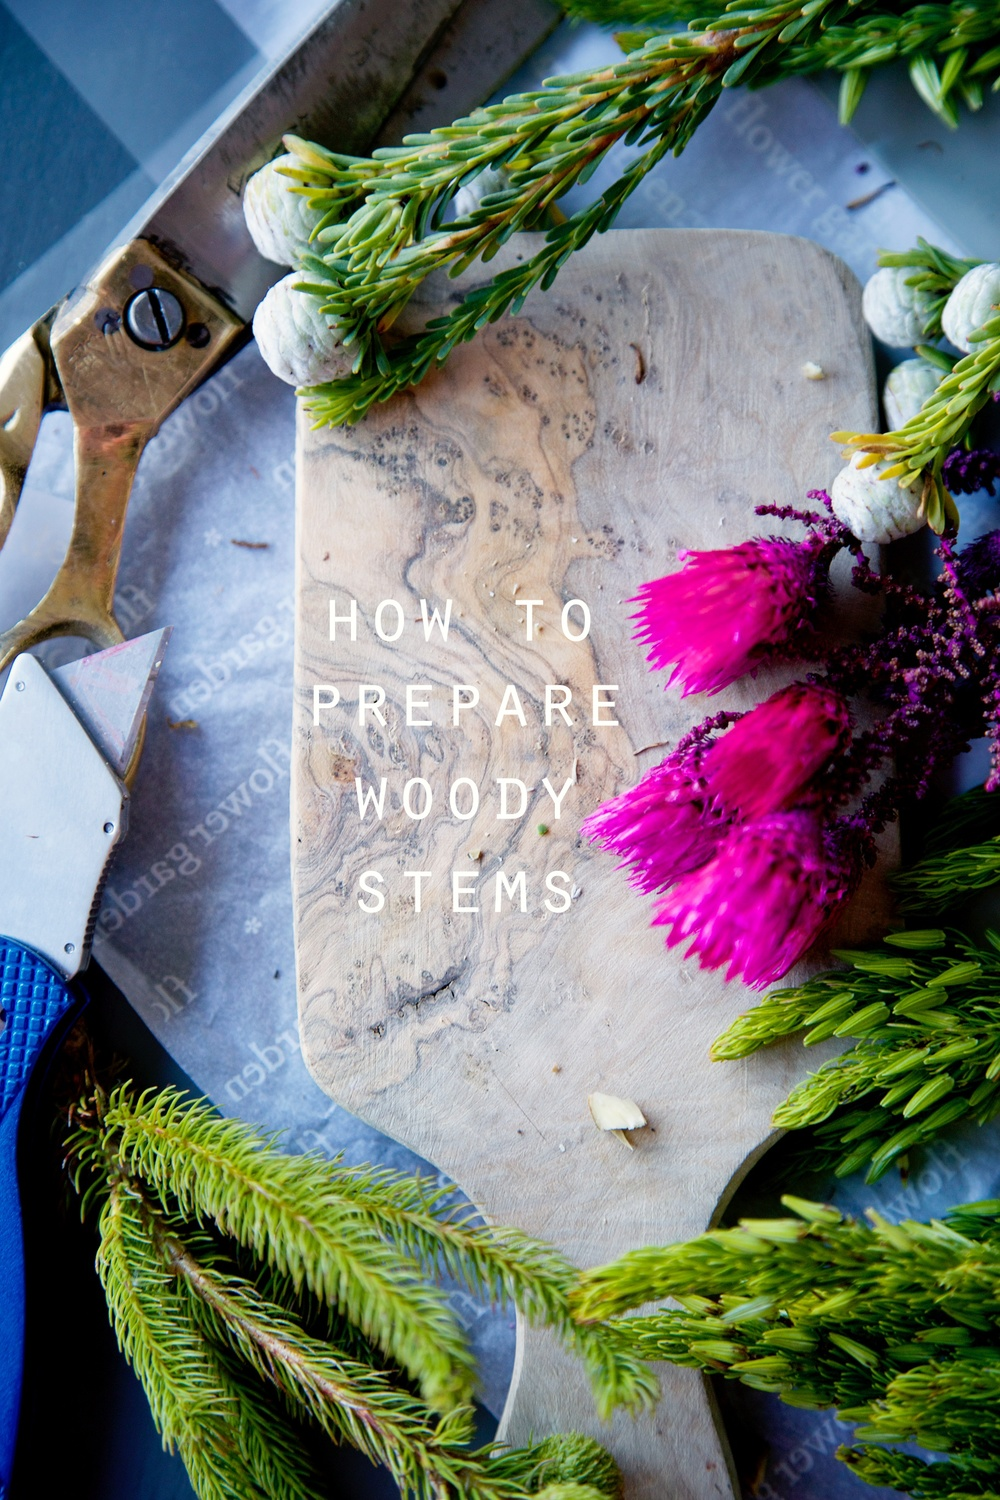 How to prepare flowers